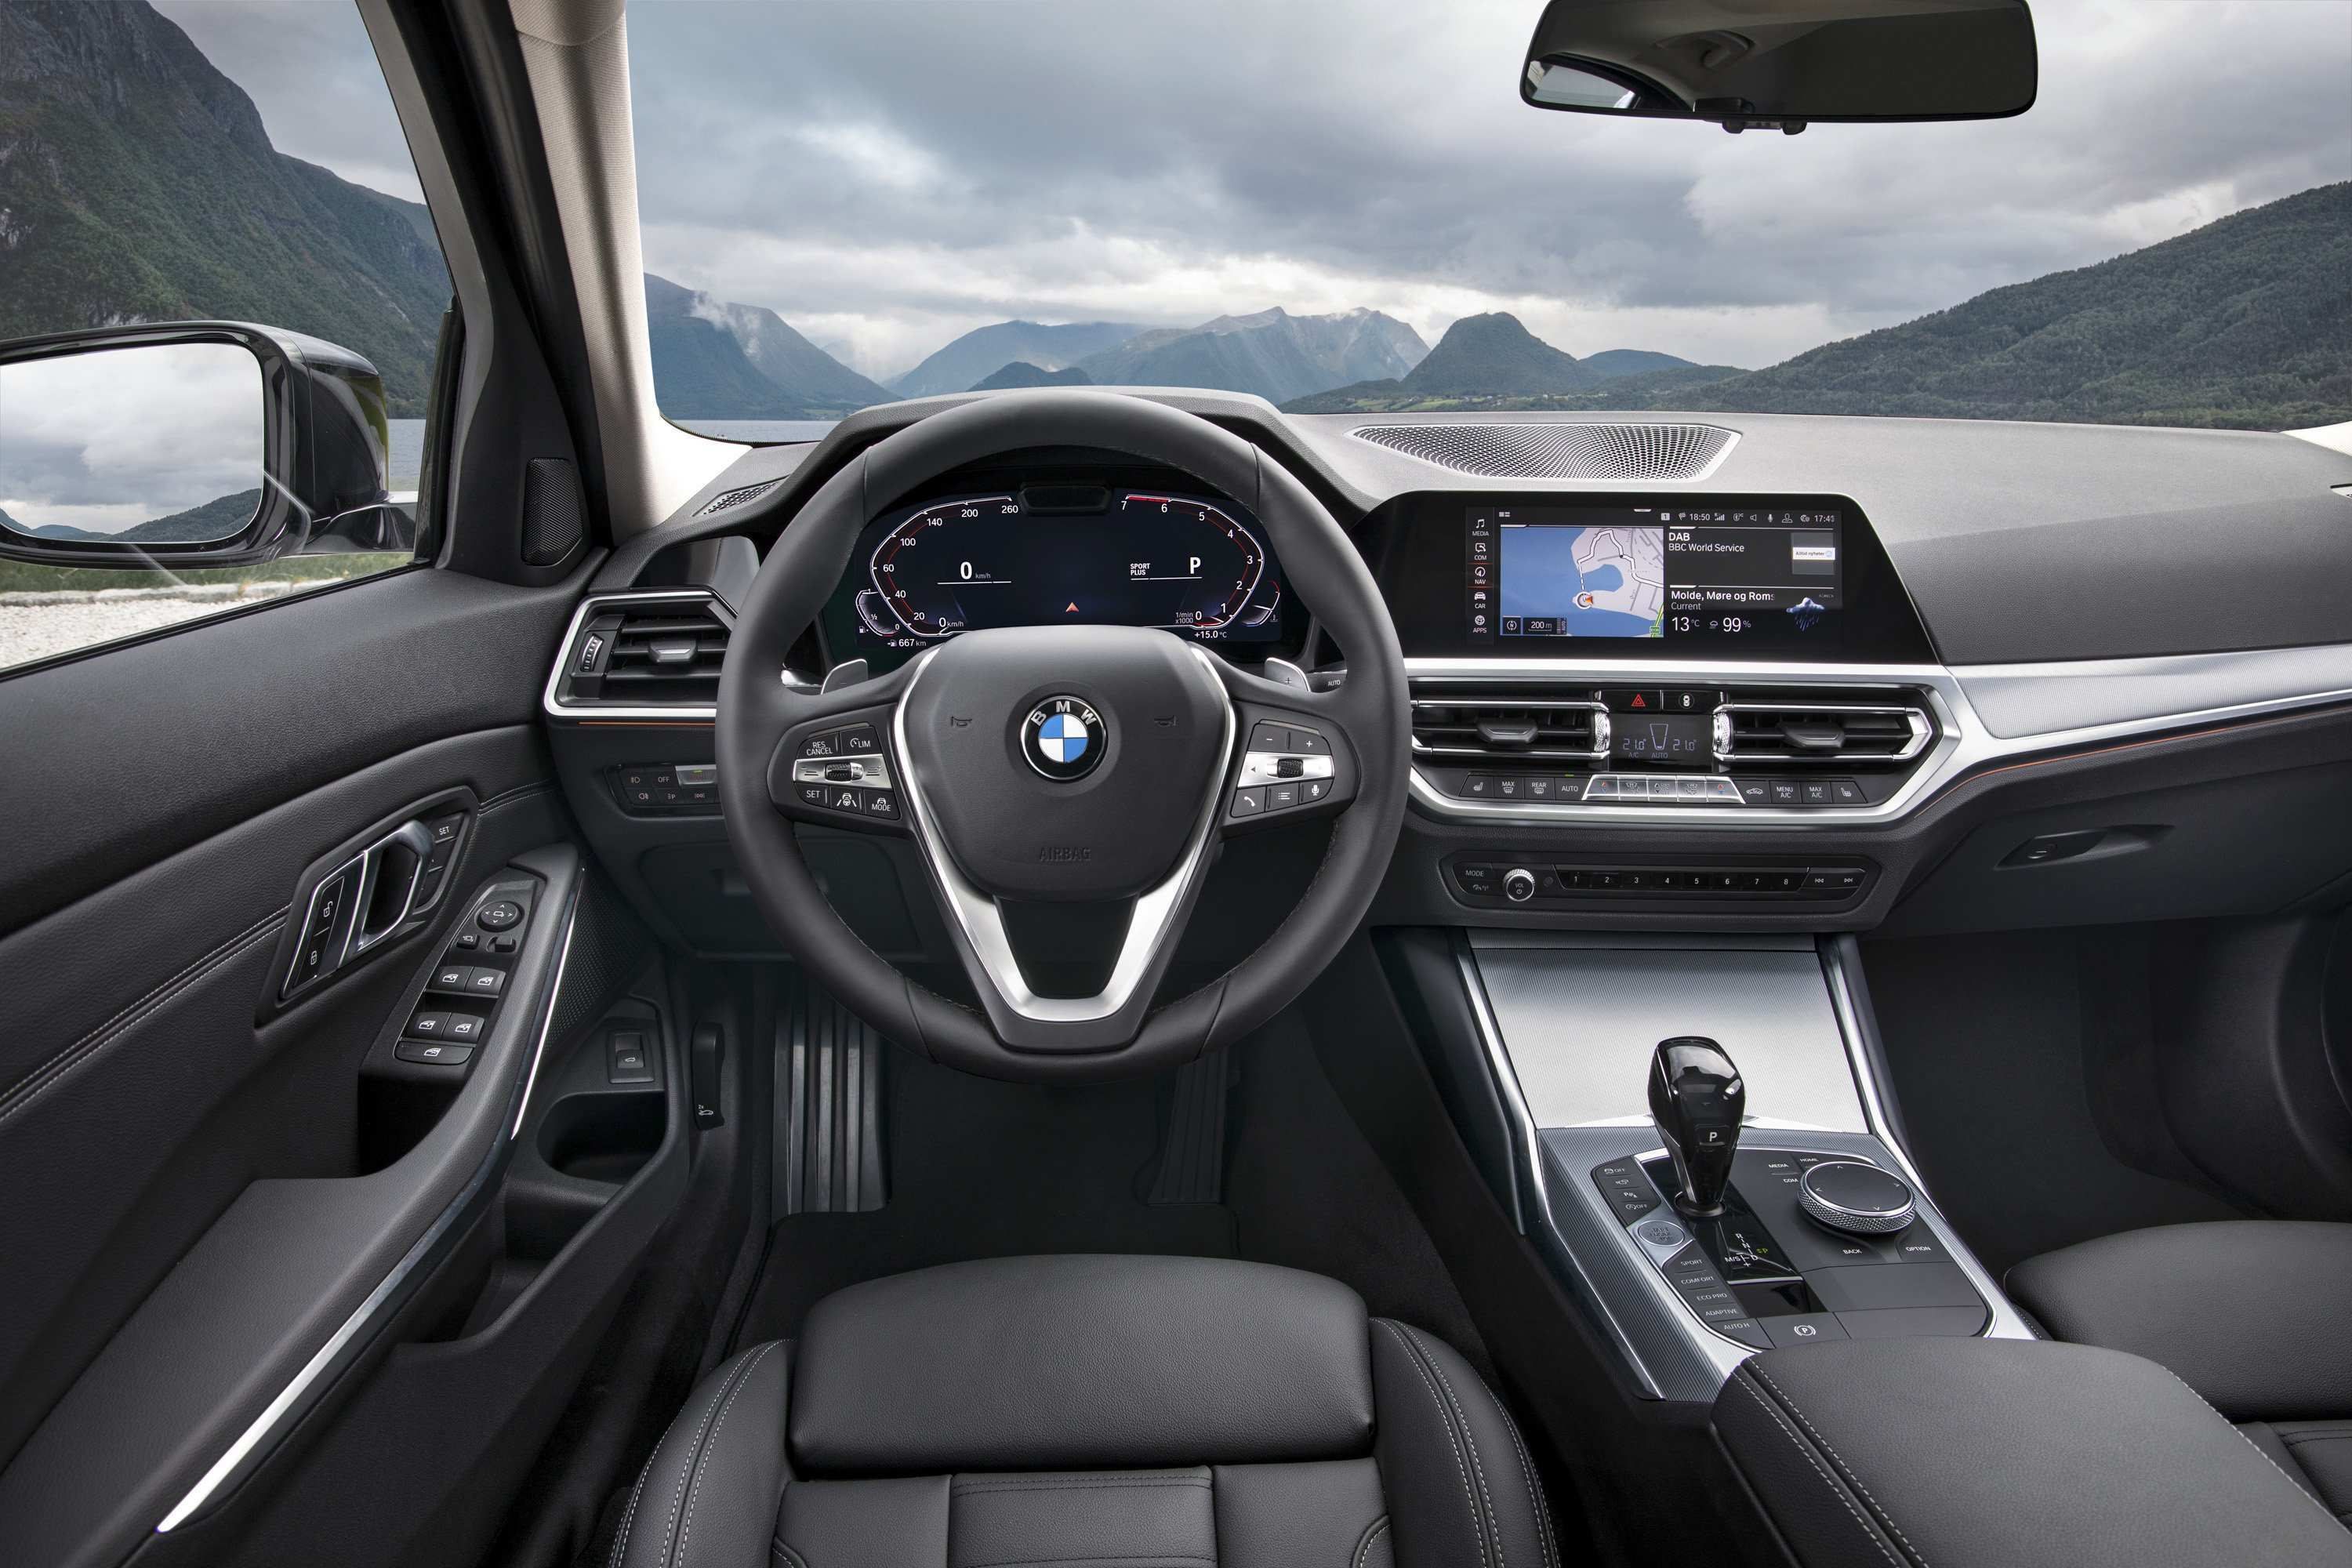 20 New The 2019 Bmw Heads Up Display Interior Spesification with The 2019 Bmw Heads Up Display Interior